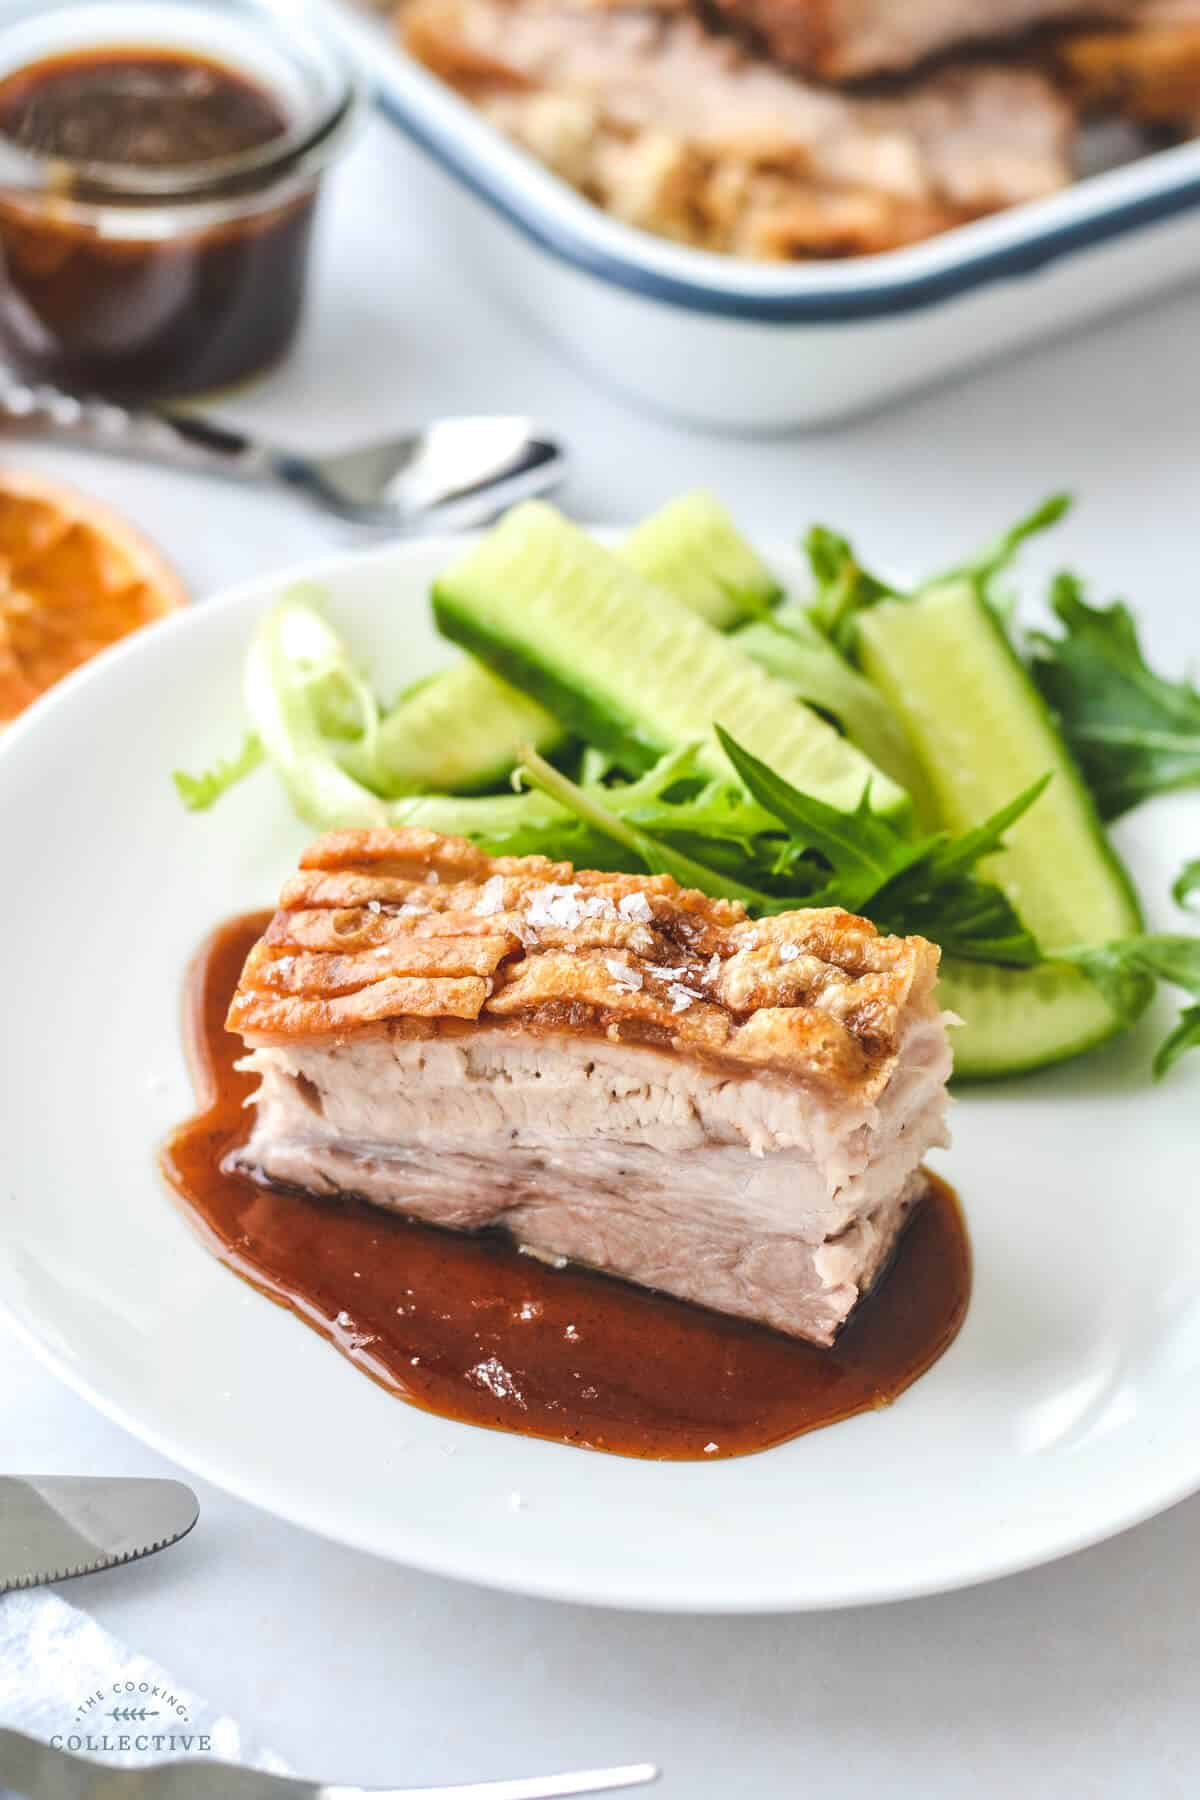 a slice of pork belly with sauce and green salad on a white plate